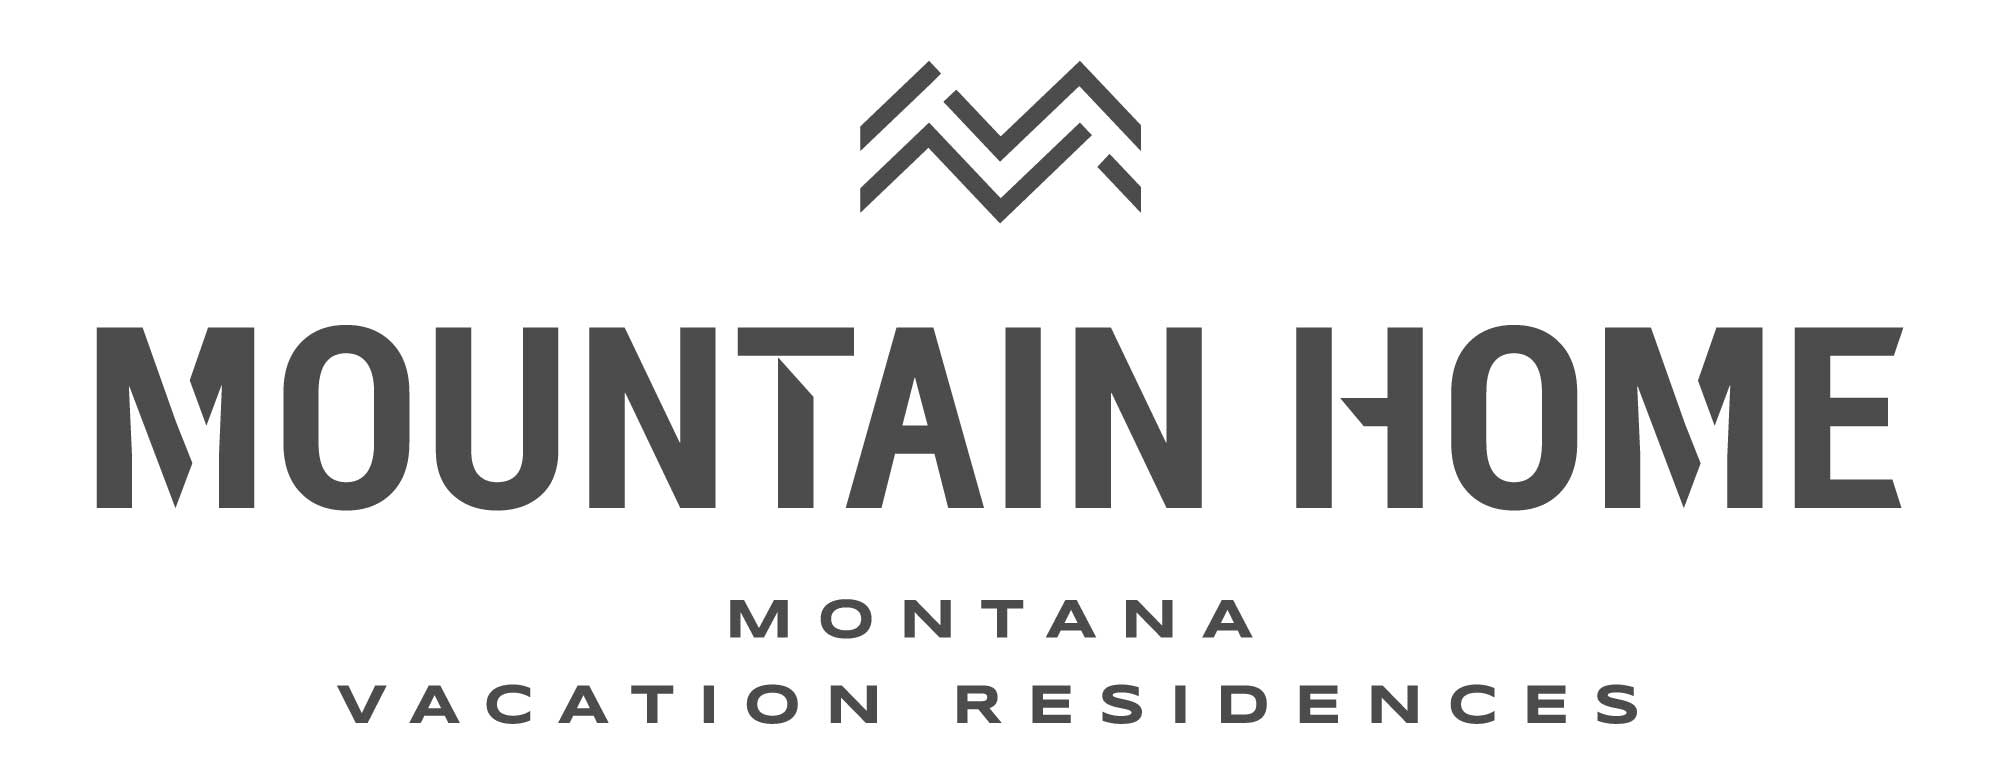 Cartographer-MountainHome-Logo-IconType-Color.jpg